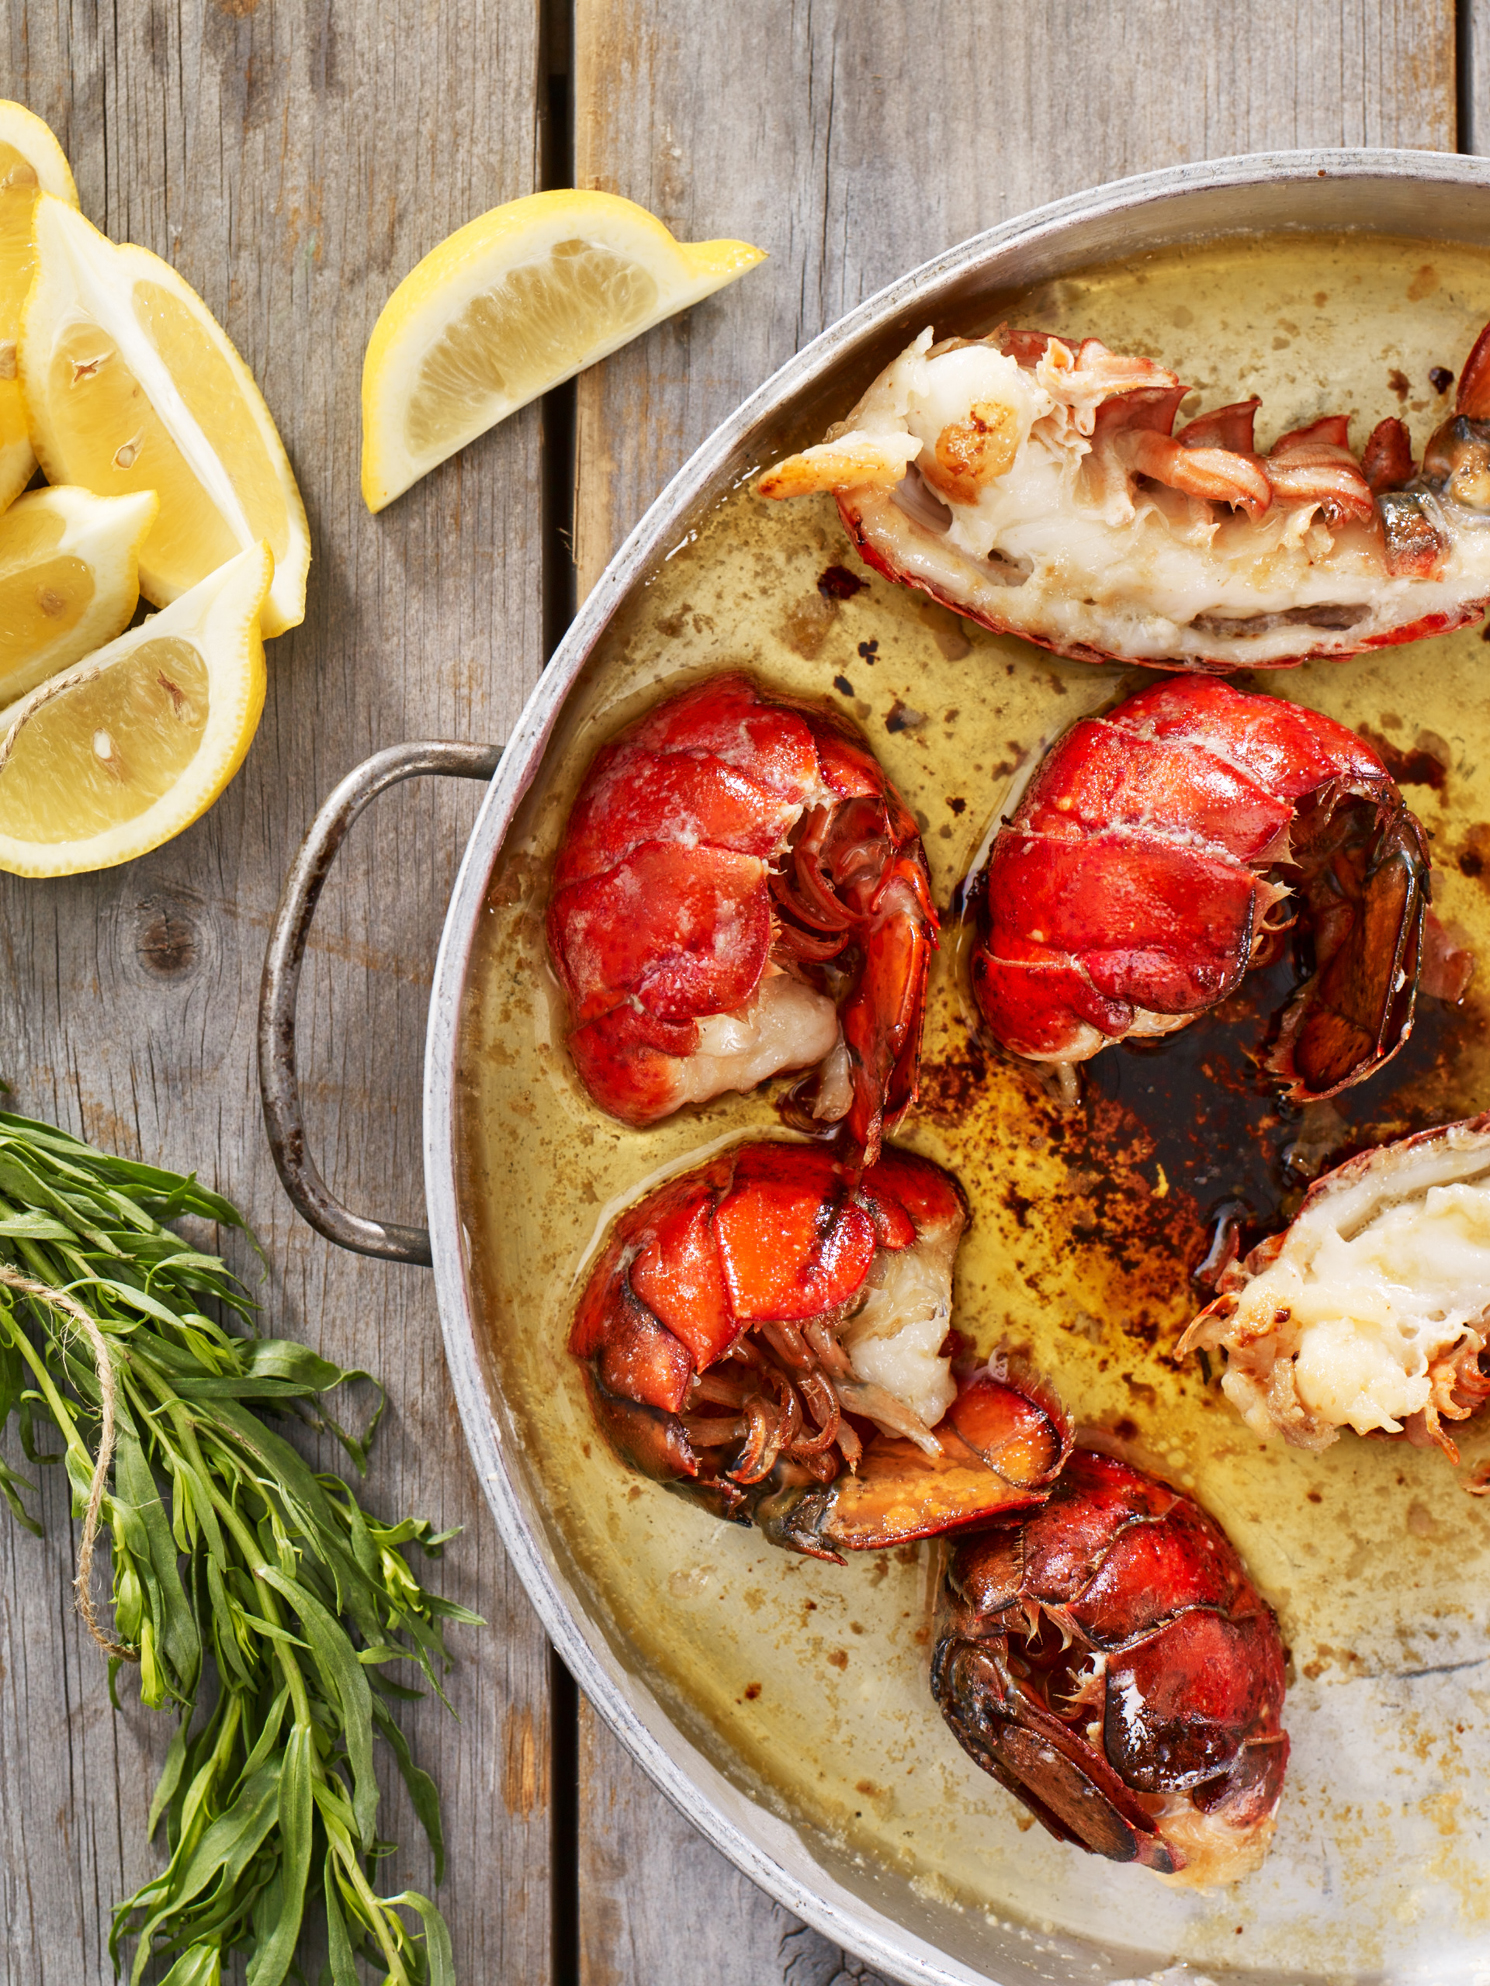 Maine_Lobster_2016-02-24_Recipes_Selects_050_web